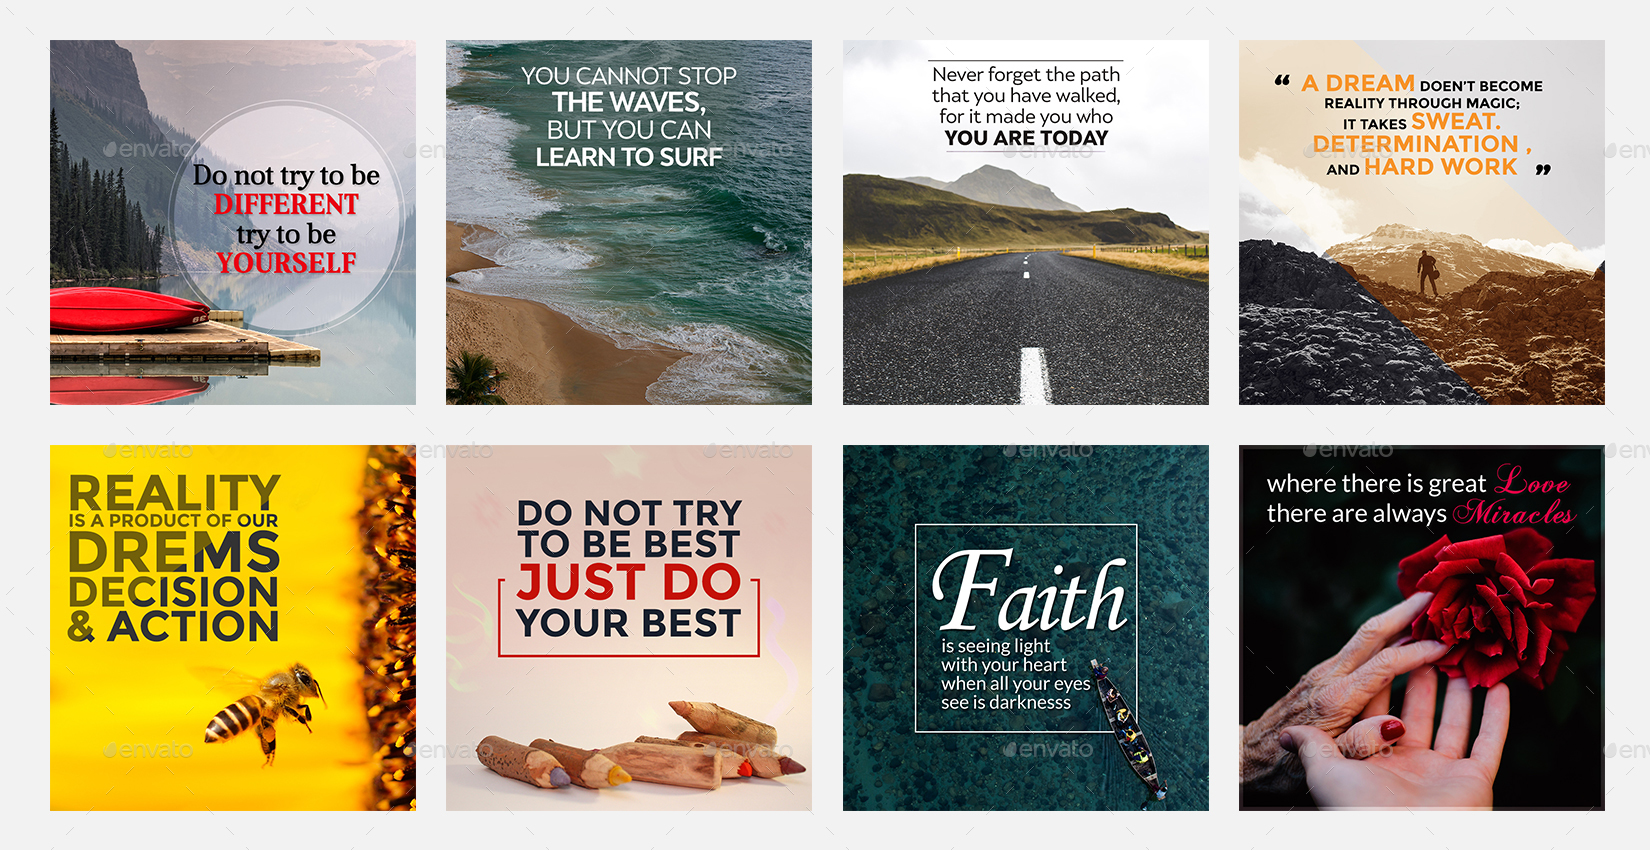 Quotes instagram templates 50 designs by doto graphicriver bee 1874 quotes instagram templates01preview01g bee 1874 quotes instagram templates01preview02g bee 1874 quotes instagram solutioingenieria Image collections